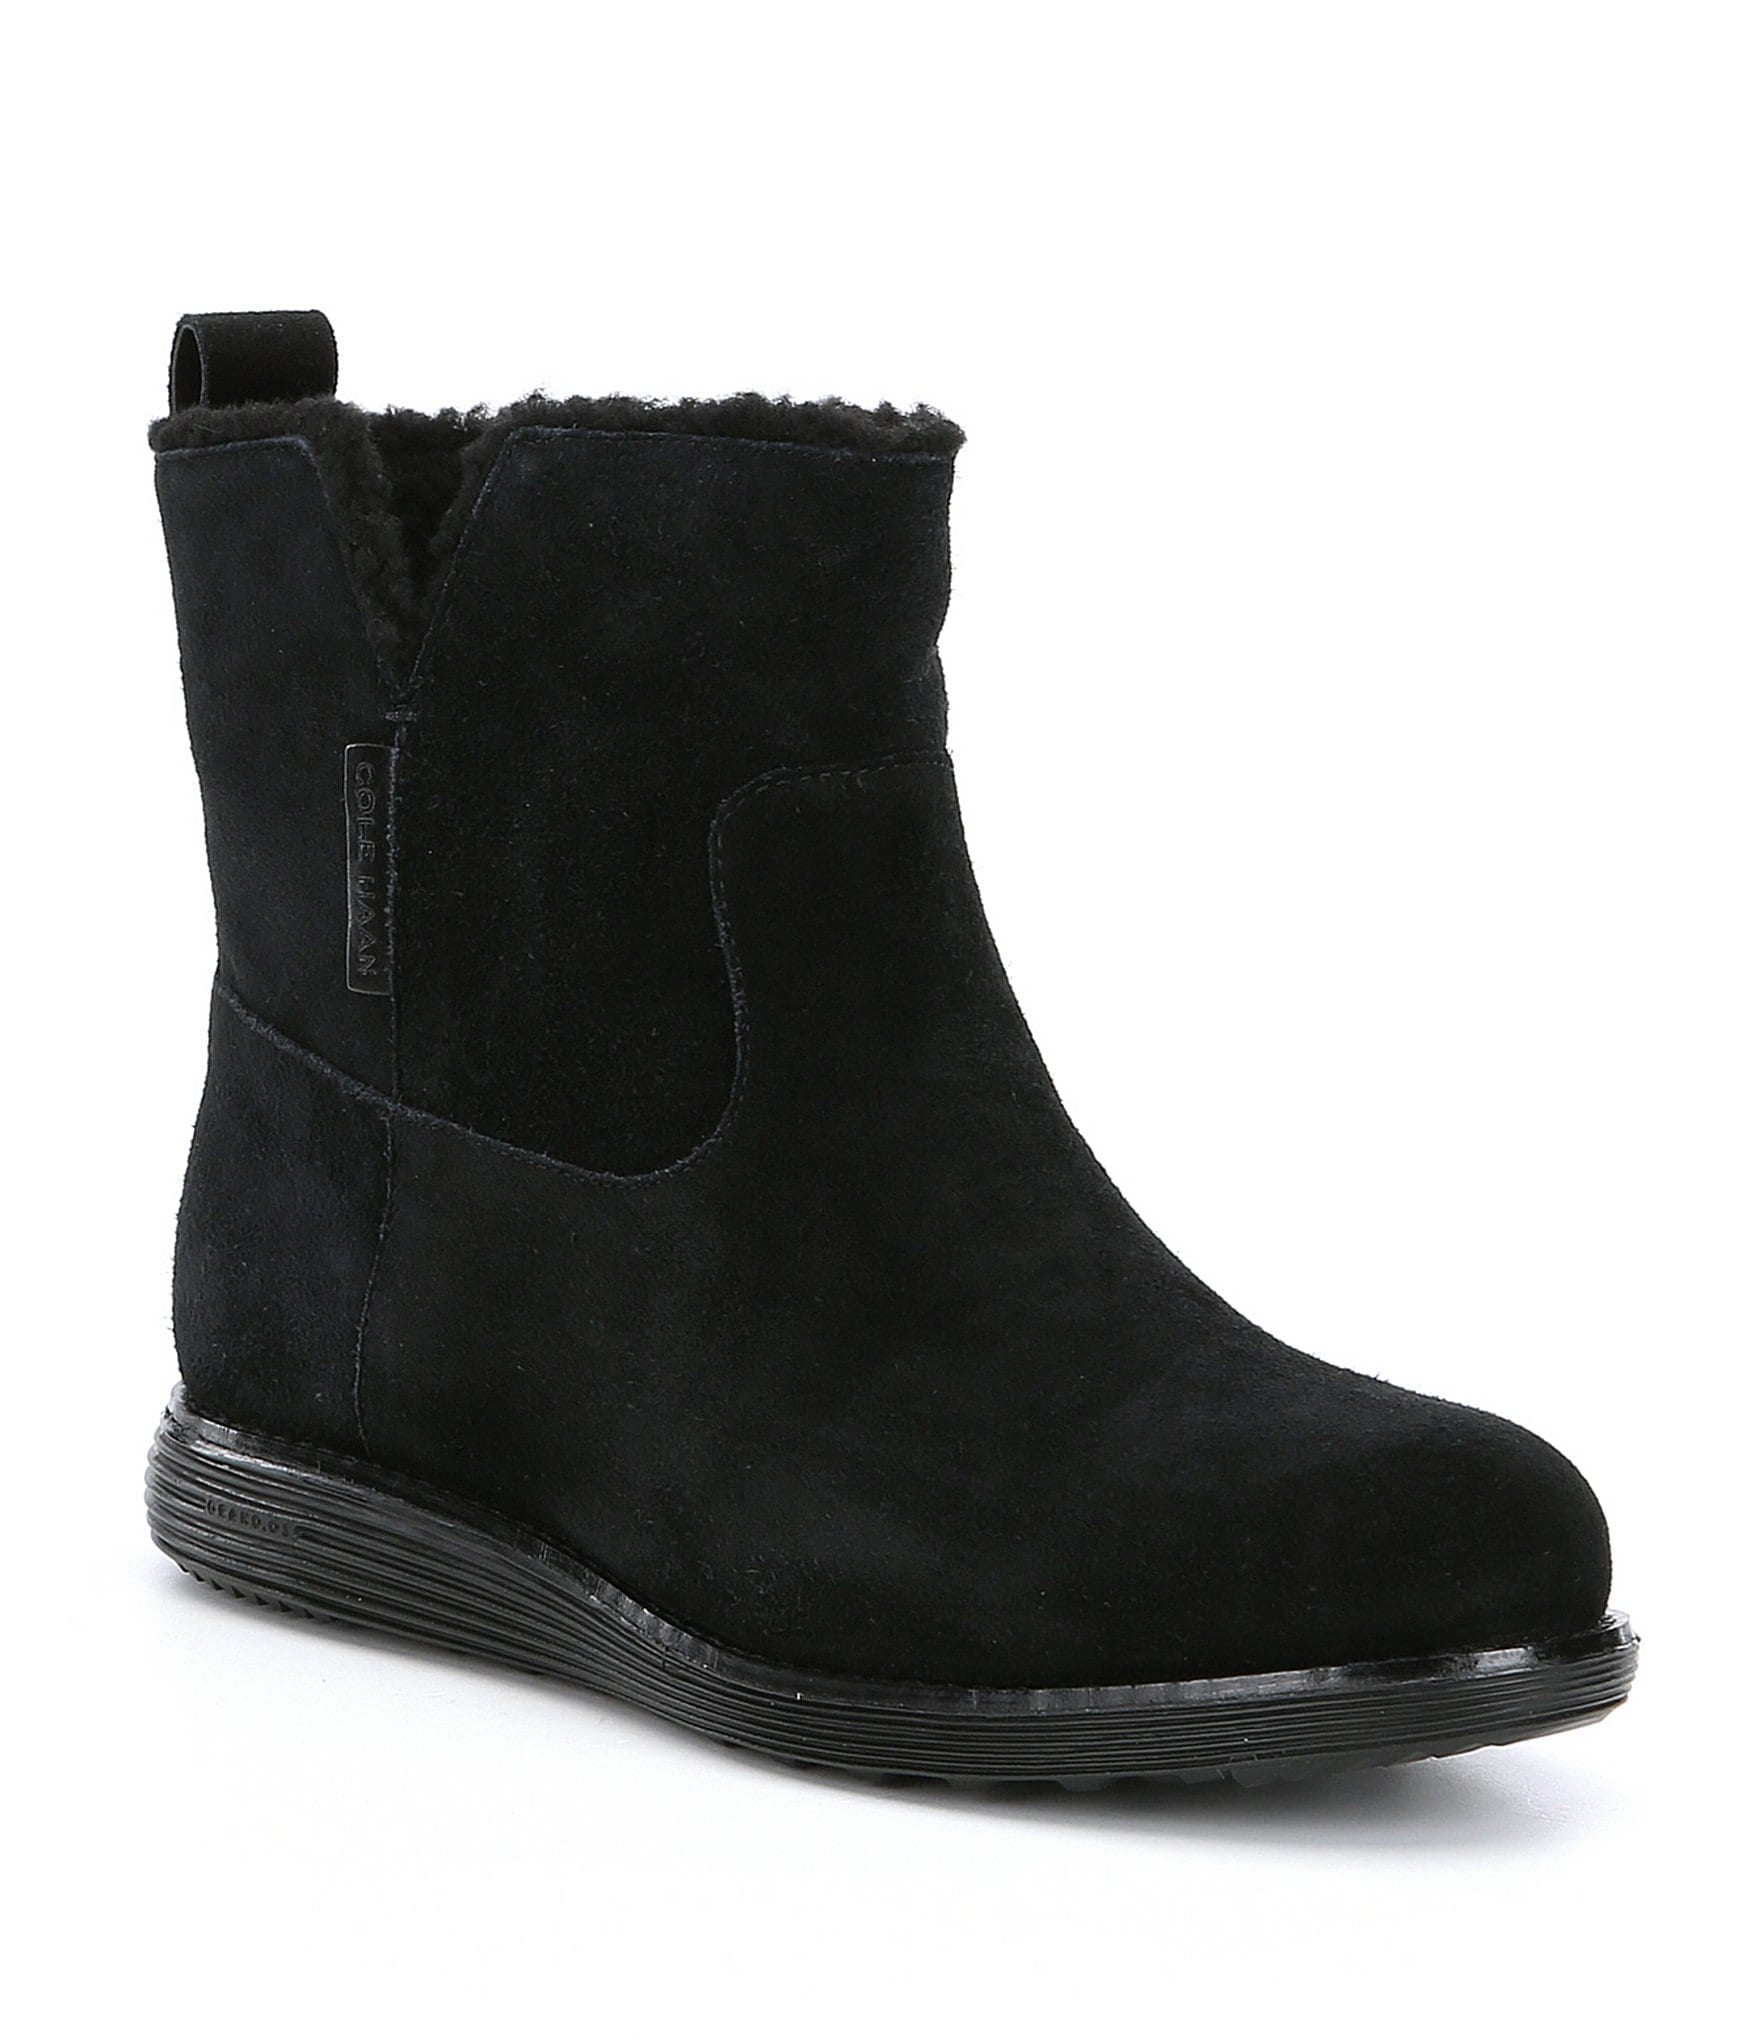 Cole Haan OriginalGrand MotoGrand Water Resistant Suede Booties | Dillards